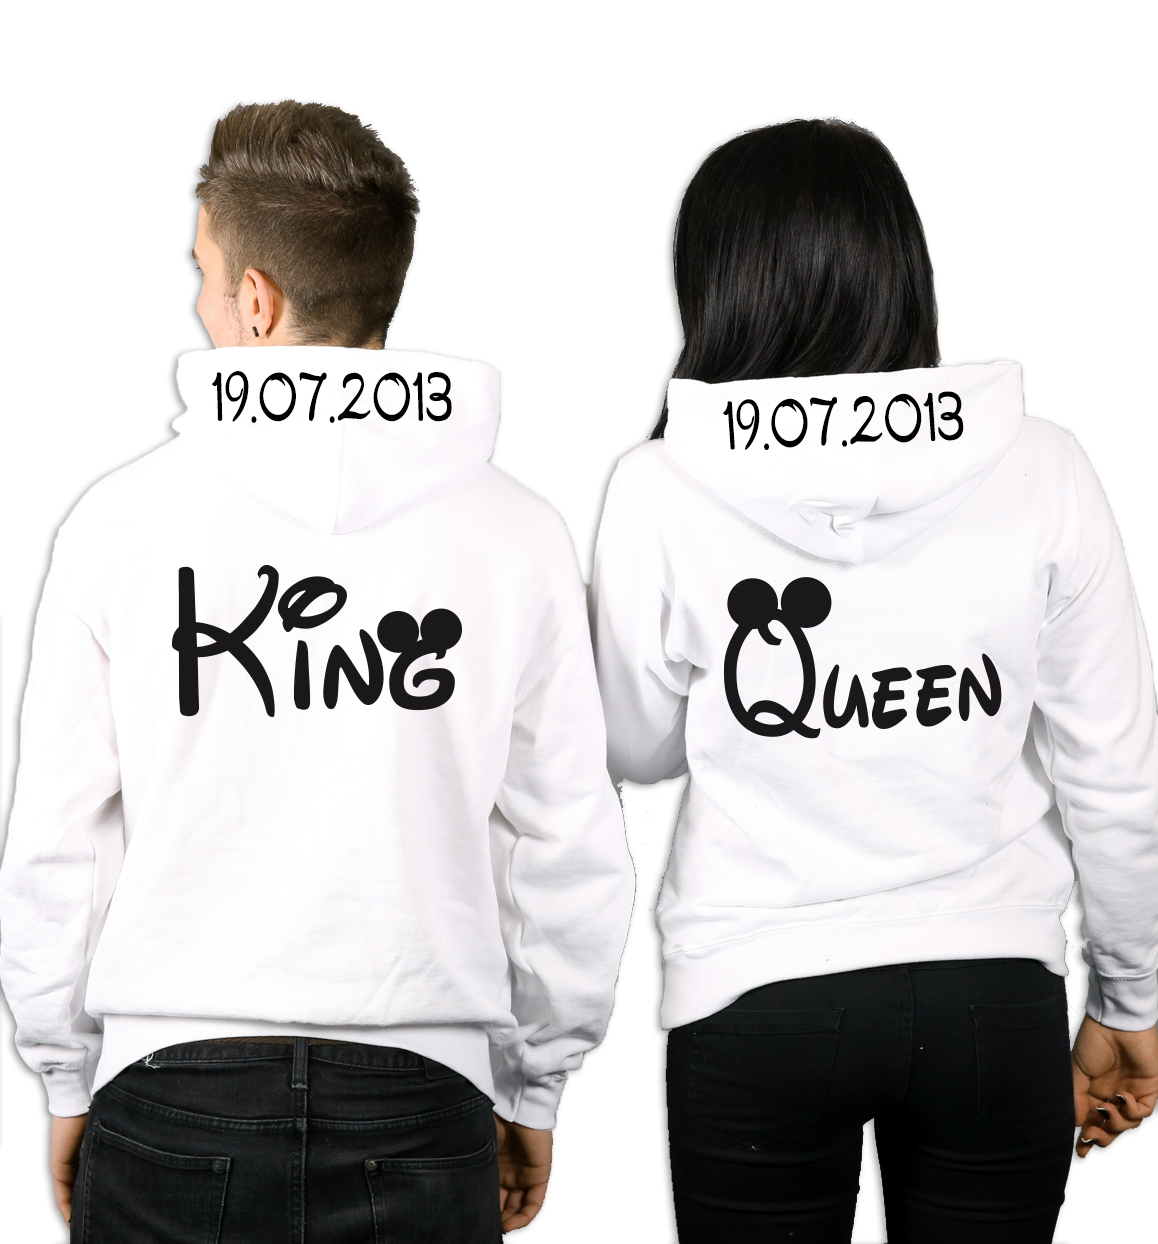 King Queen Bettwäsche Hoodies Pullover T Shirts Bedrucken Designlounge